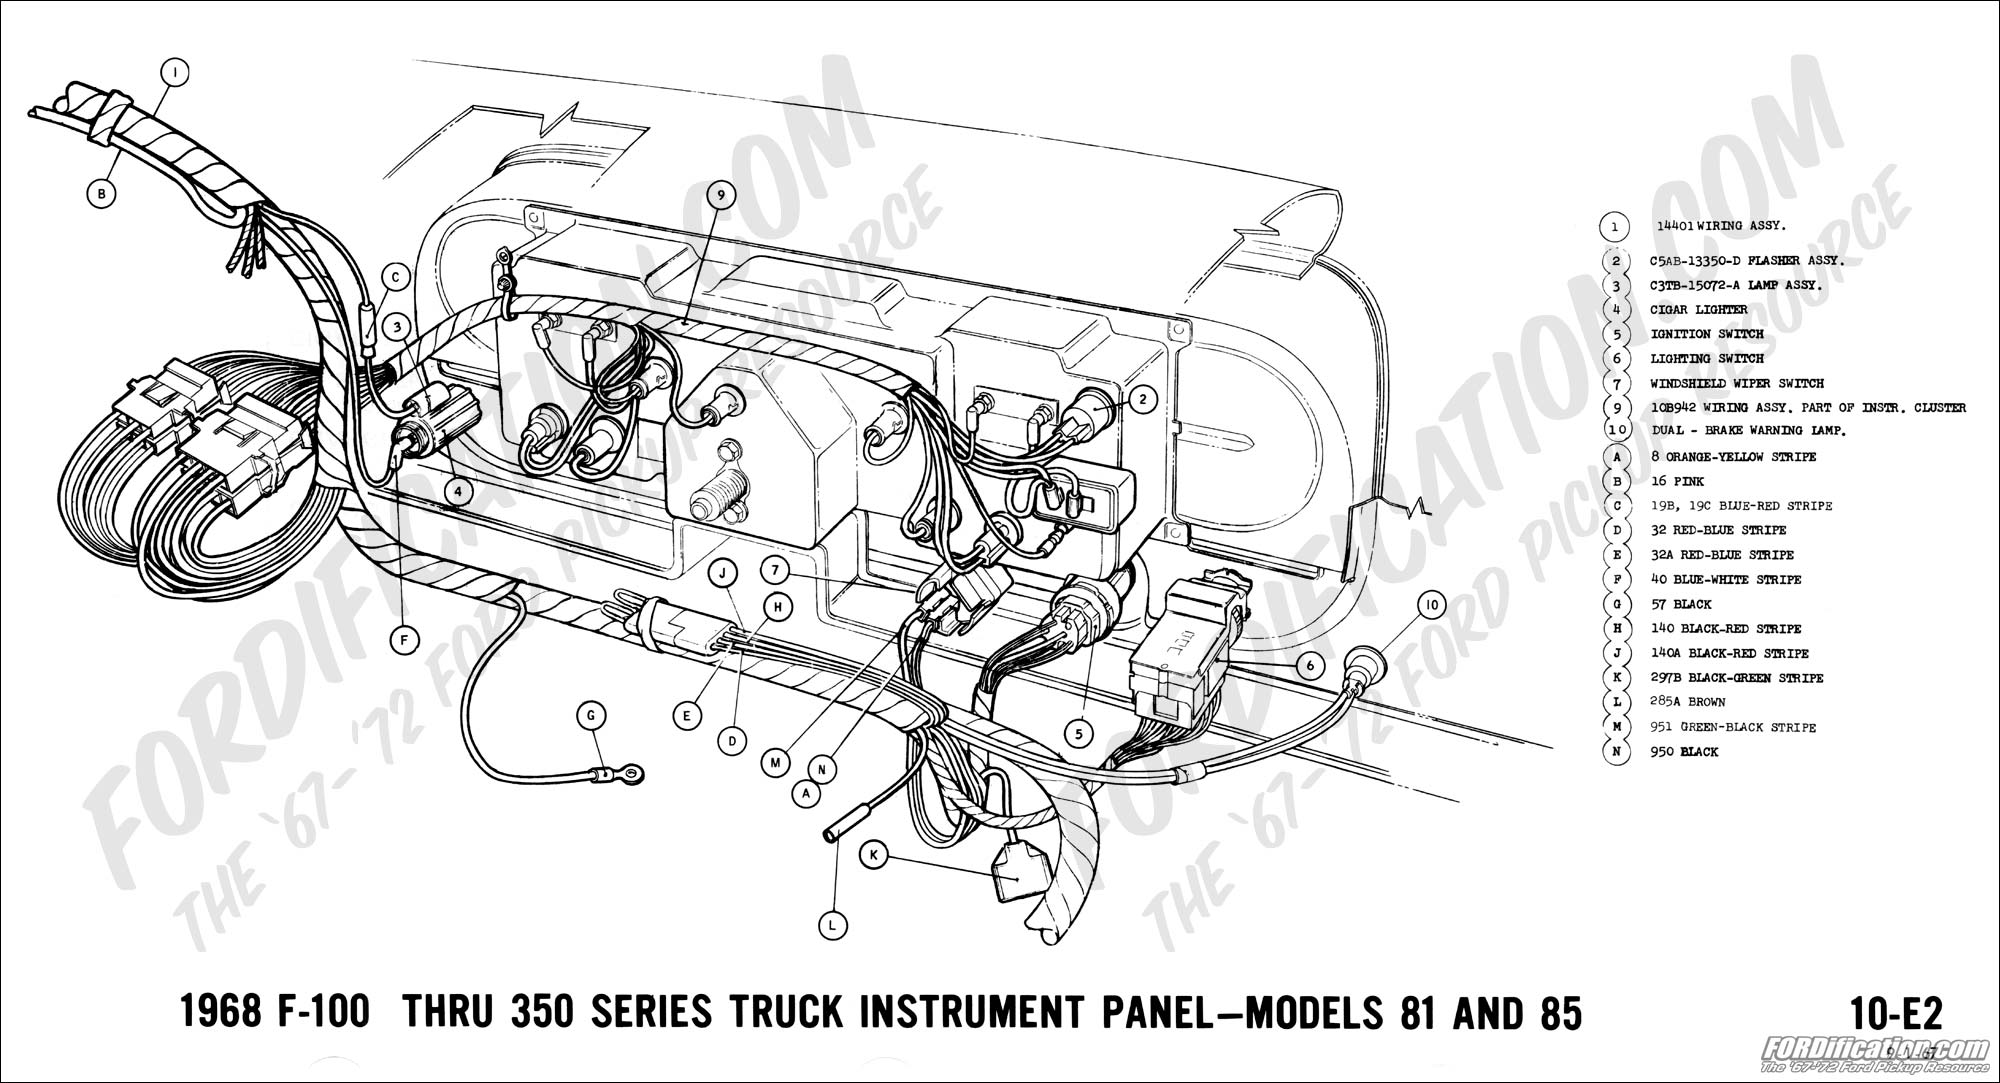 2013 Chevy Impala Starting Wiring Diagram Will Be A Engine Ford Truck Technical Drawings And Schematics Section H 2003 Tail Light